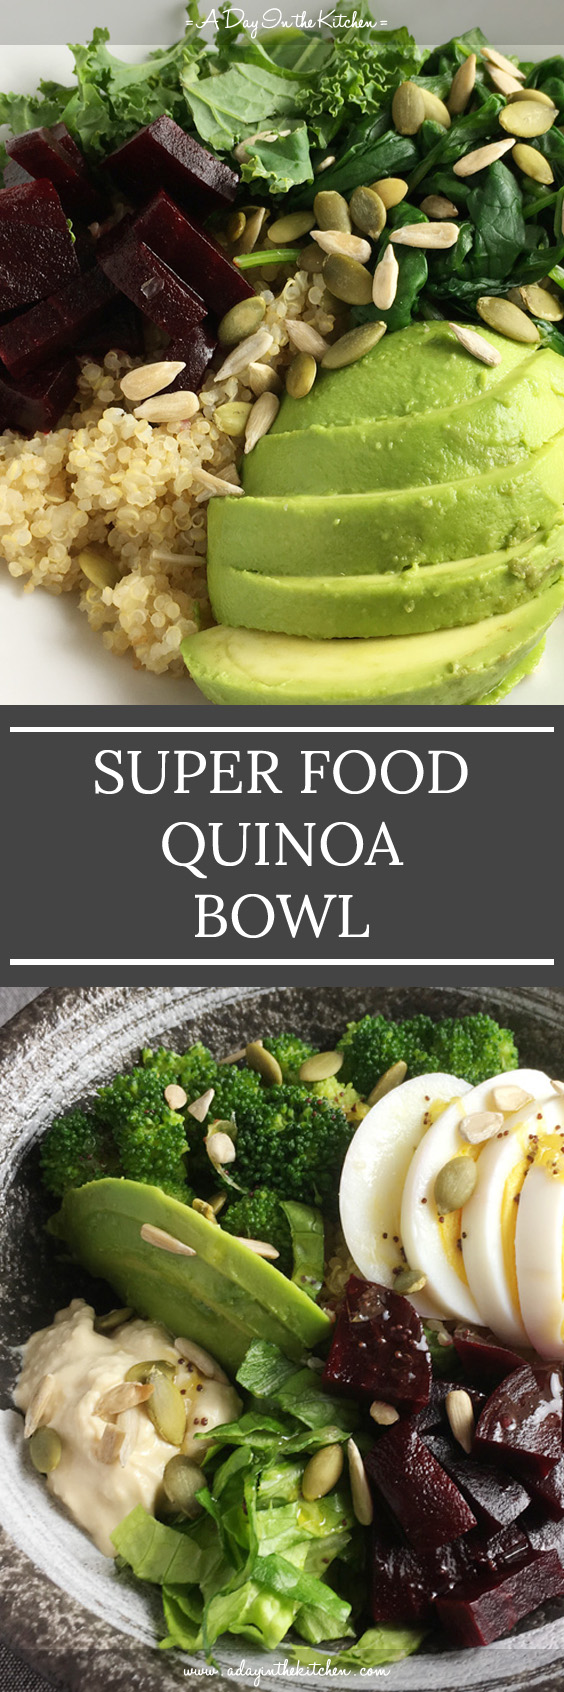 This Super Food Quinoa Bowl is refreshing, satisfying, and tasty, all-in-one! Top it with your favorite super foods for a perfectly healthy one-dish meal! #quinoabowl #superfood #quinoa #glutenfree